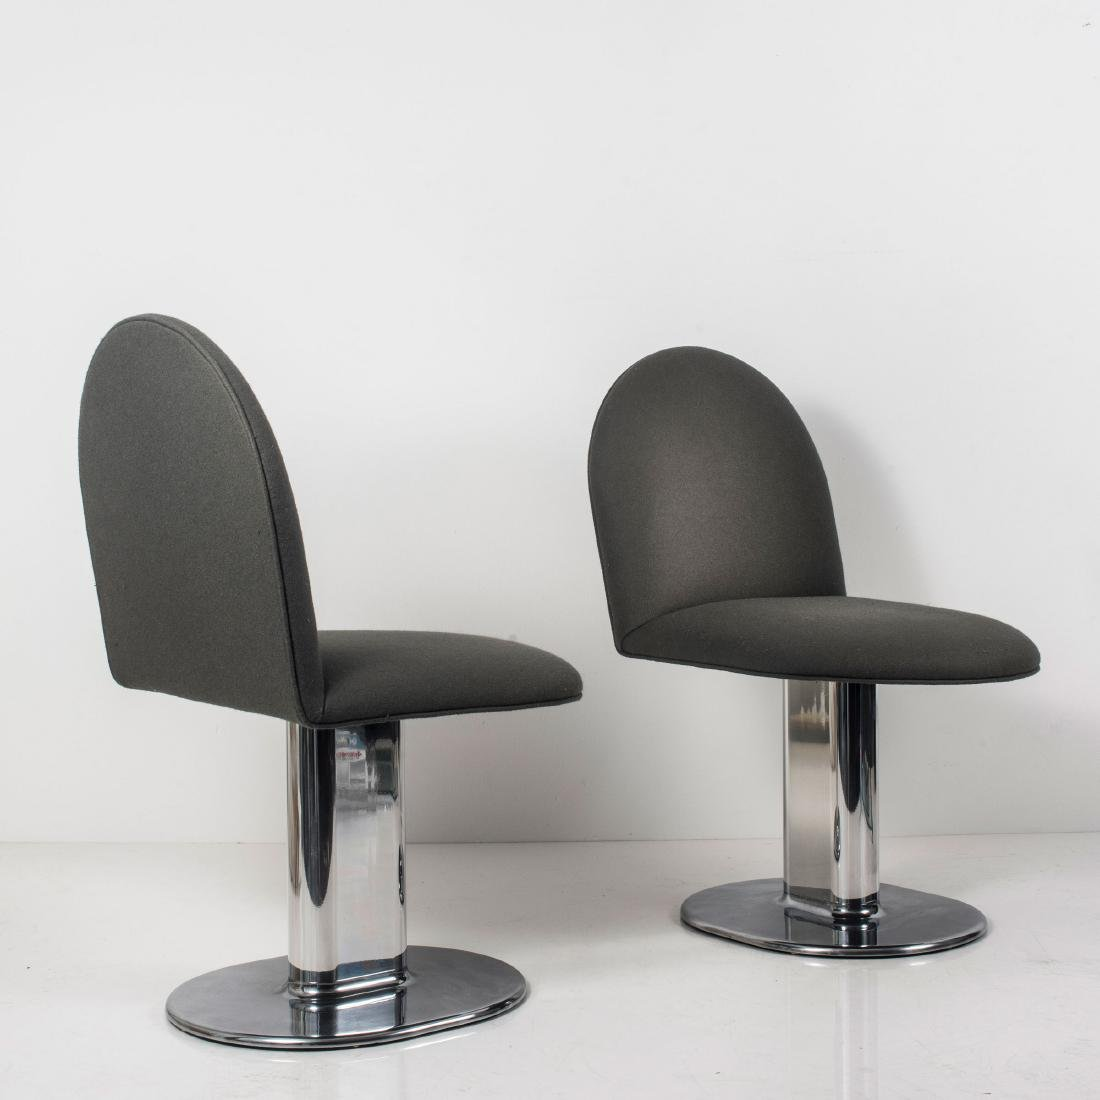 Two 'Harlow' chairs, 1971 - 3